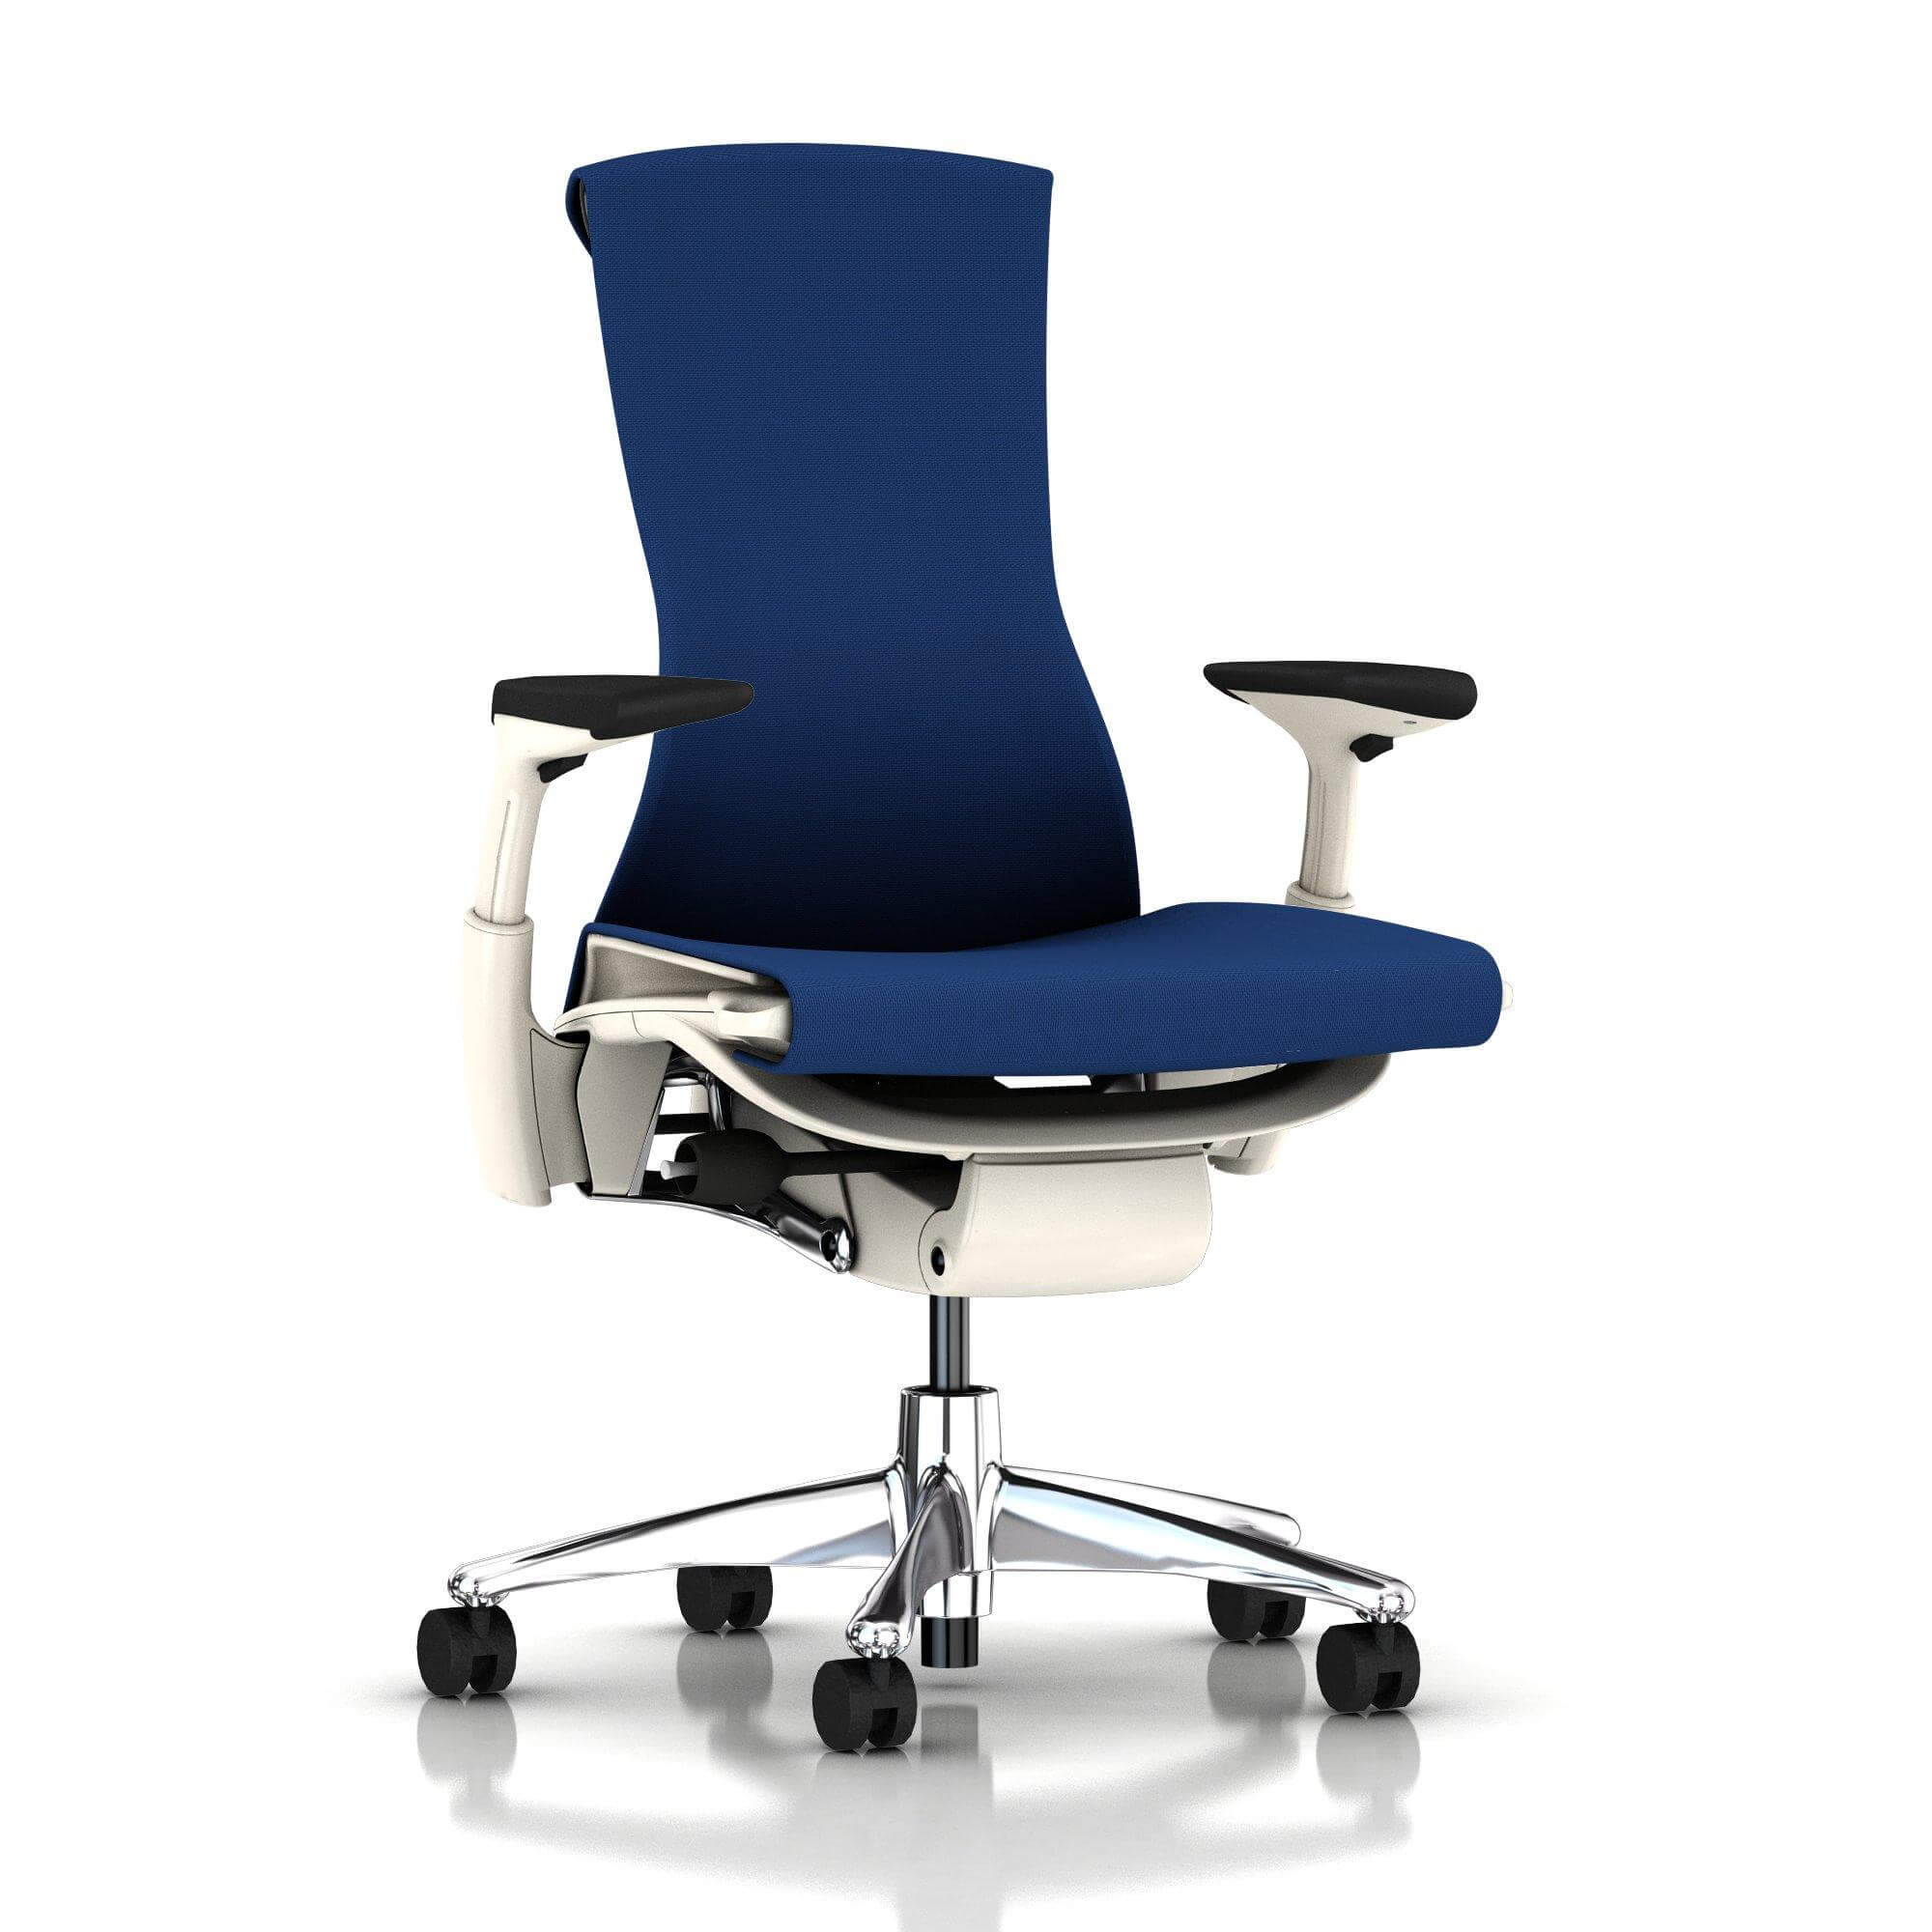 Der Embody Chair in Berry blau